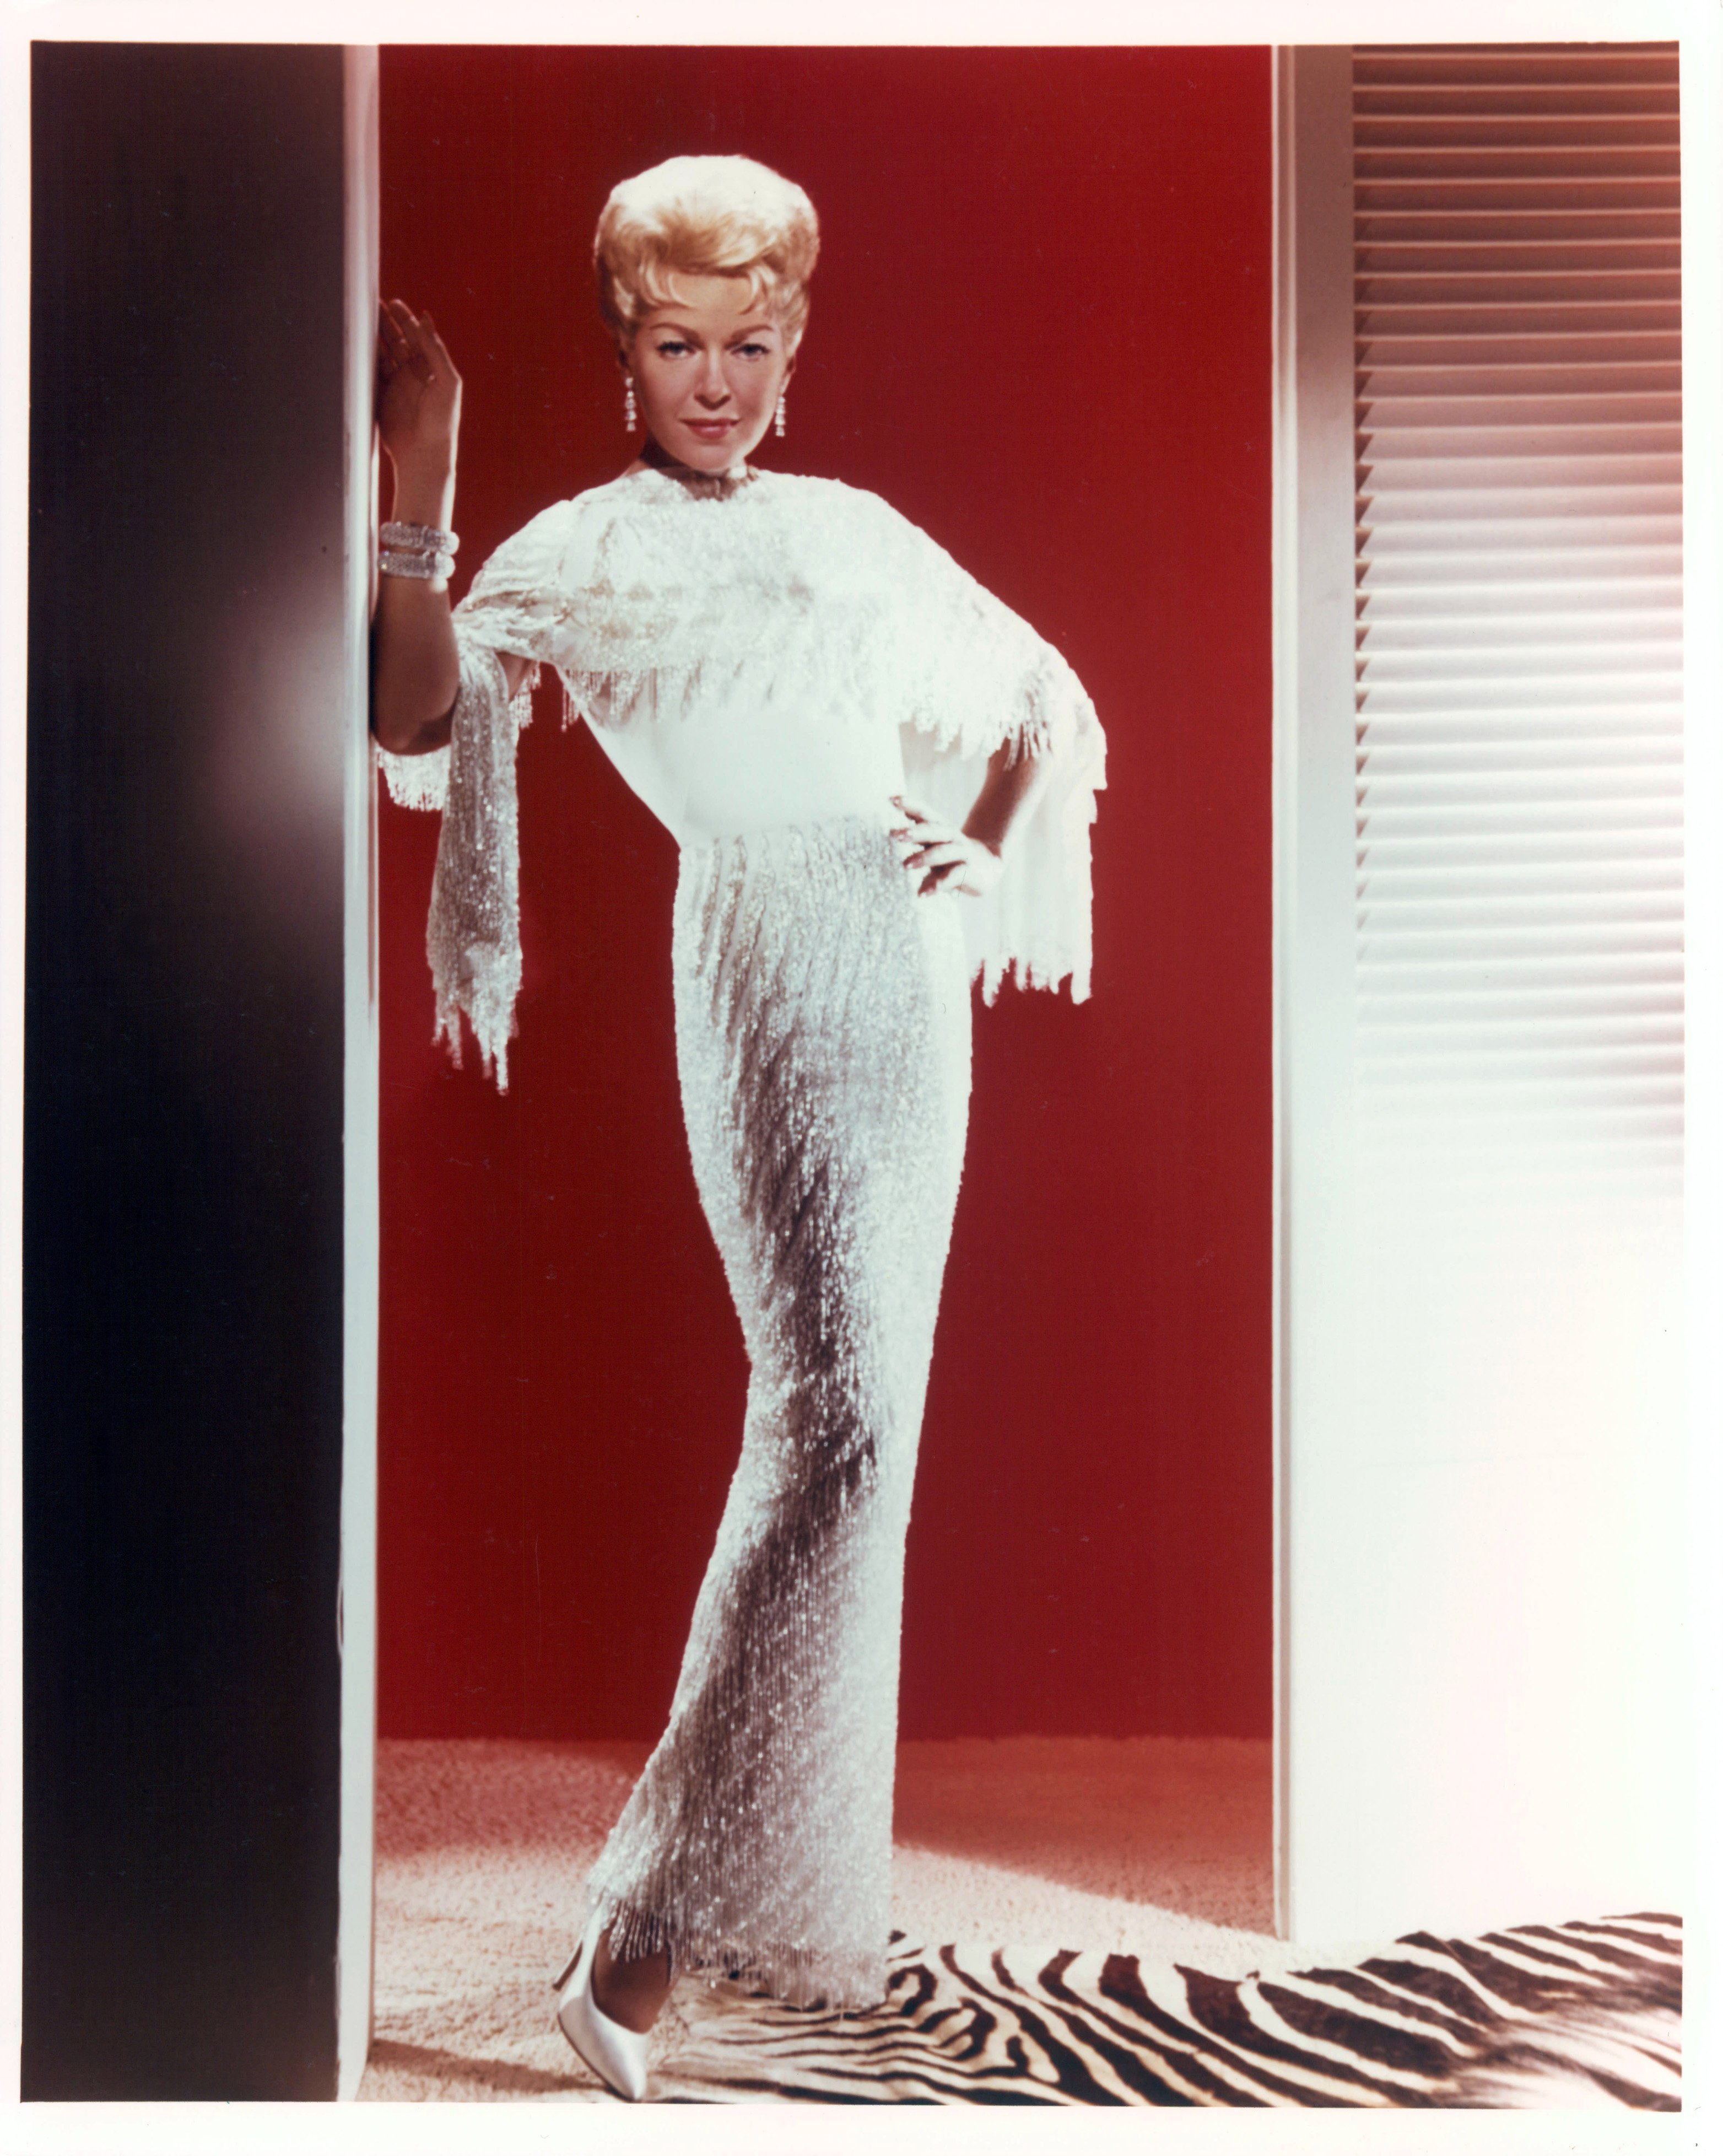 Lana Turner stands in a doorway in publicity portrait for the film 'Love Has Many Faces', 1965. | Source: Getty Images